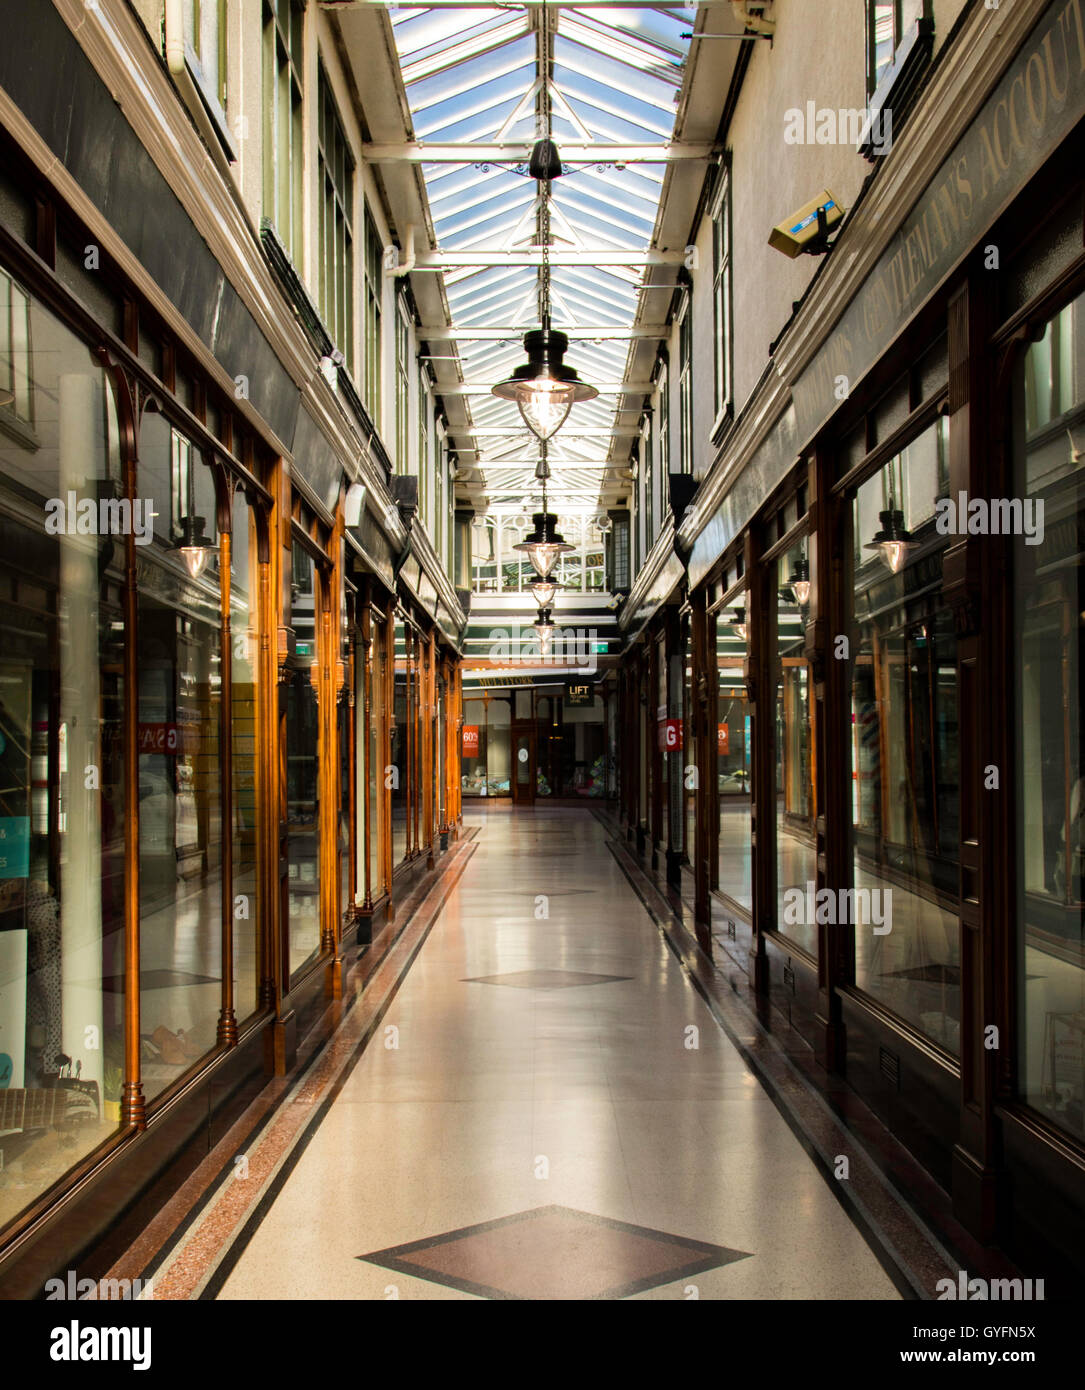 Victorian shopping Arcade in Southport. Stock Photo